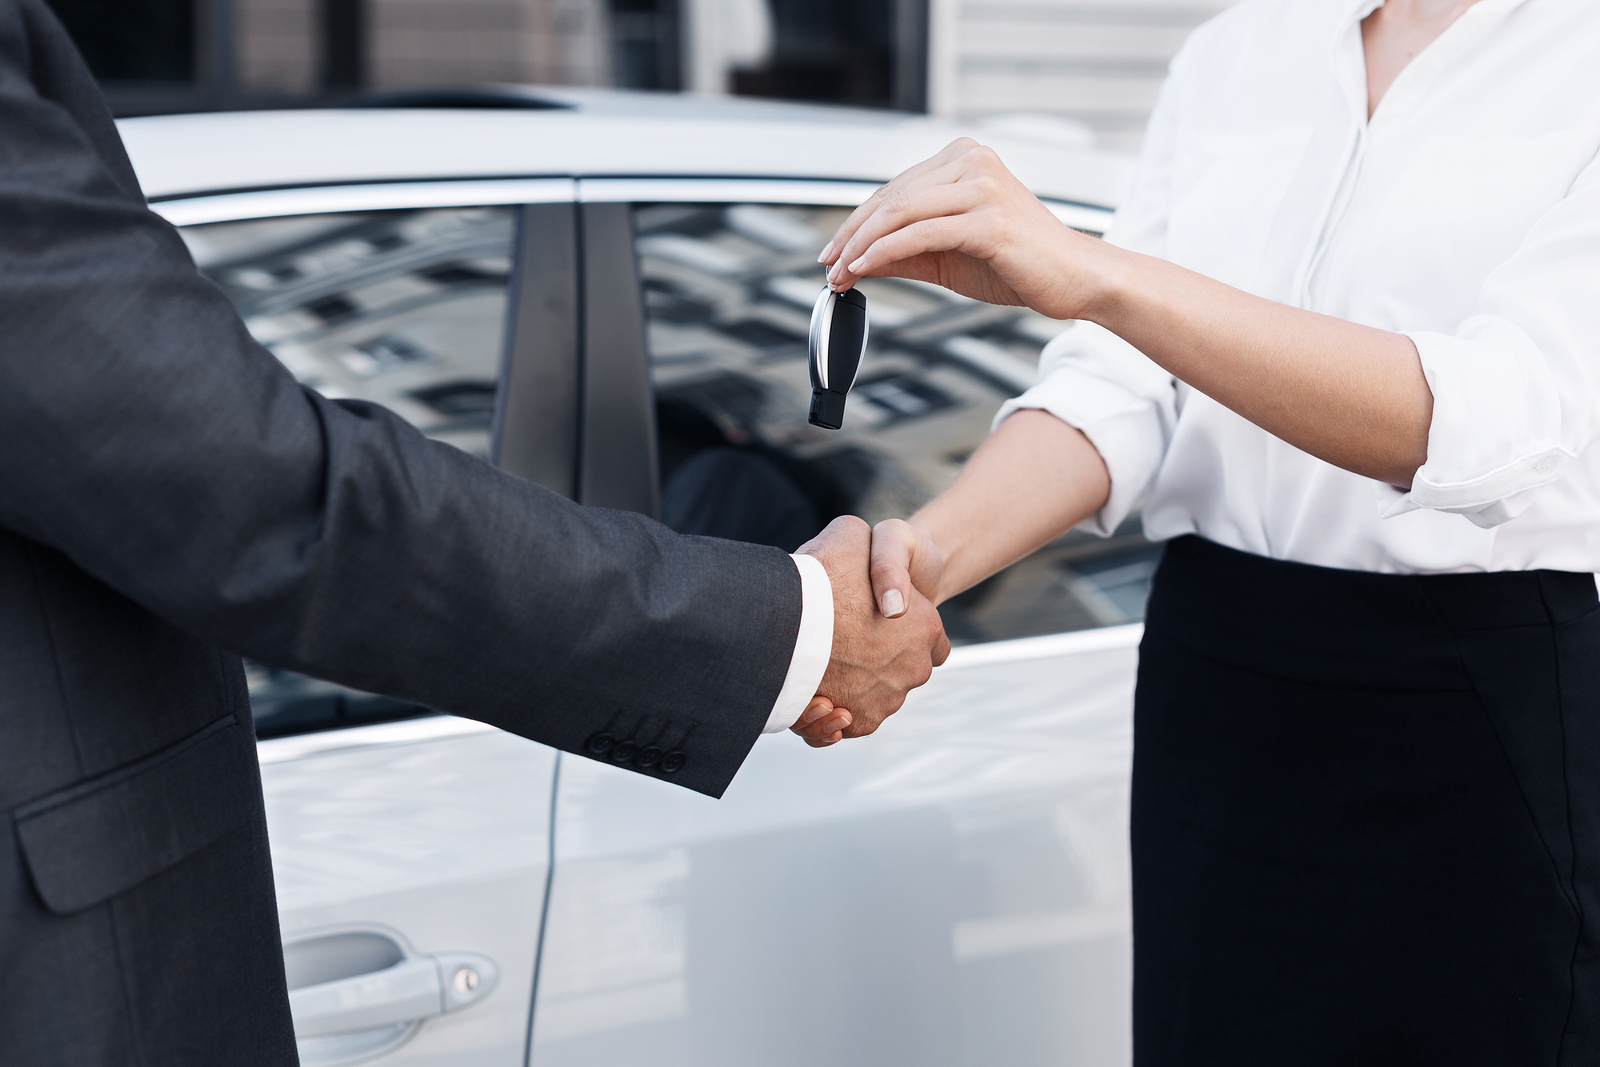 woman shaking hands with a man and handing him keys to a vehicle